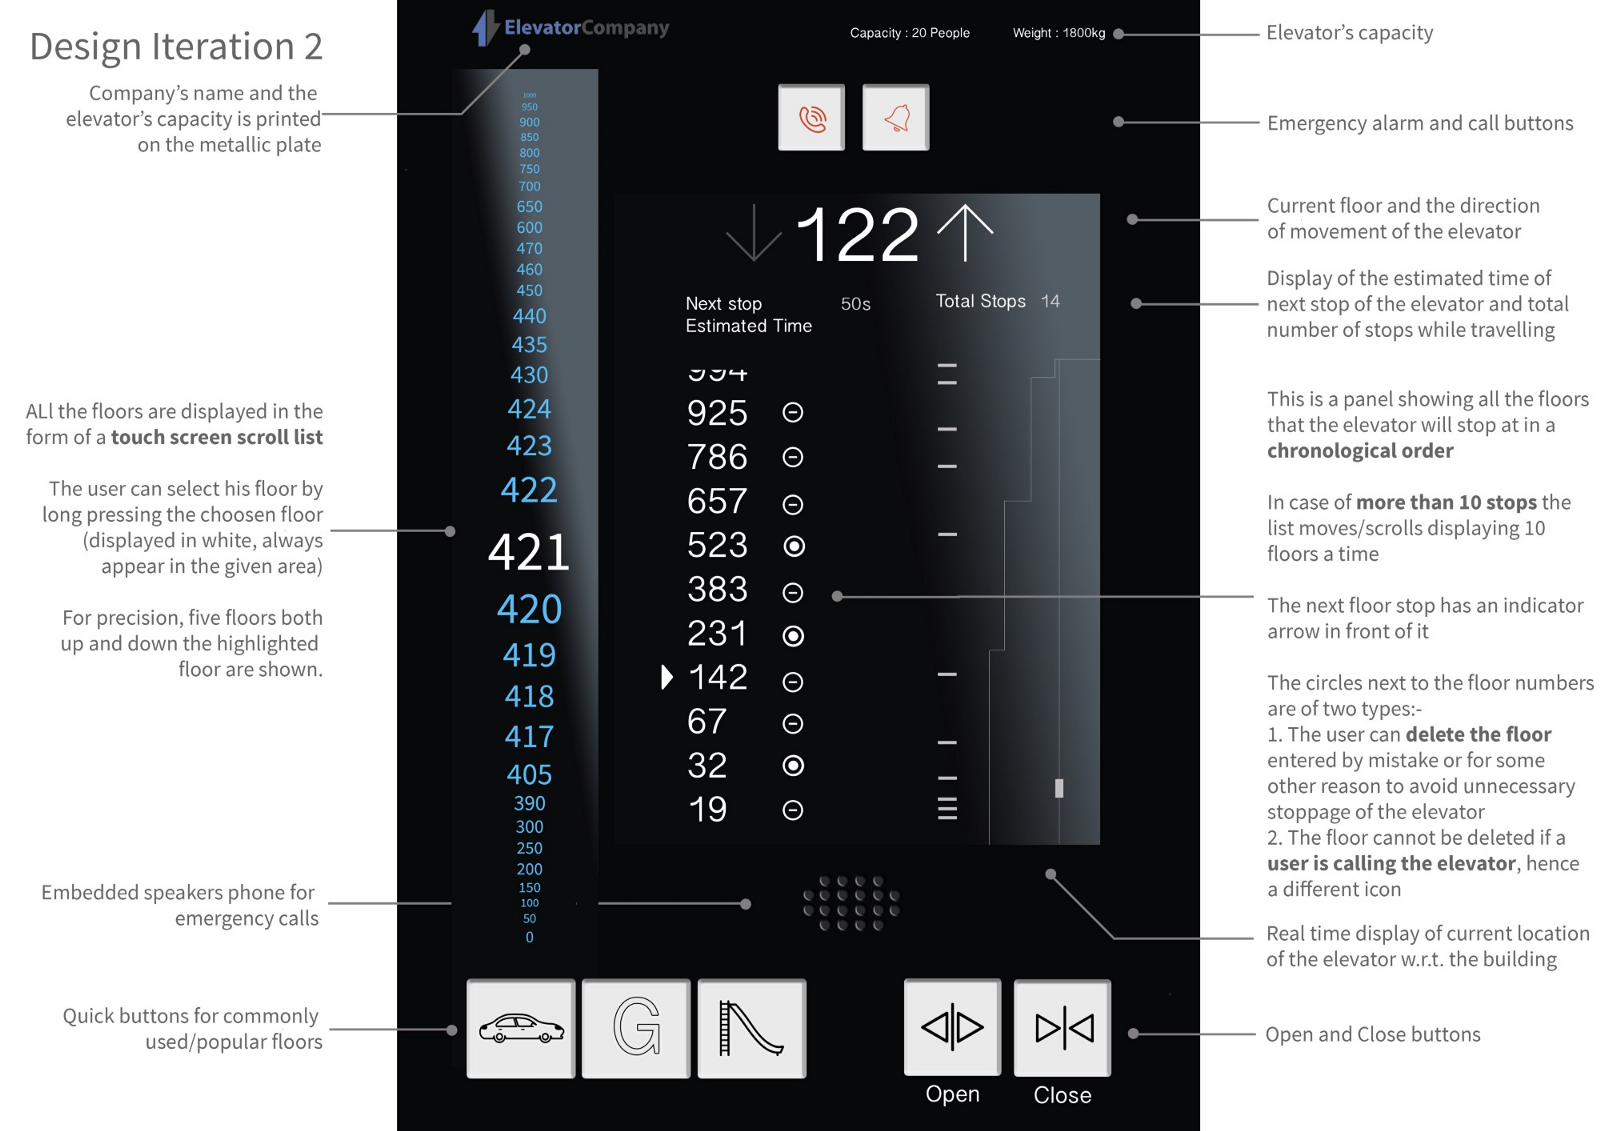 The 1,000 Floor Elevator: Why Most Designers Fail Google's Infamous Interview Design Challenge